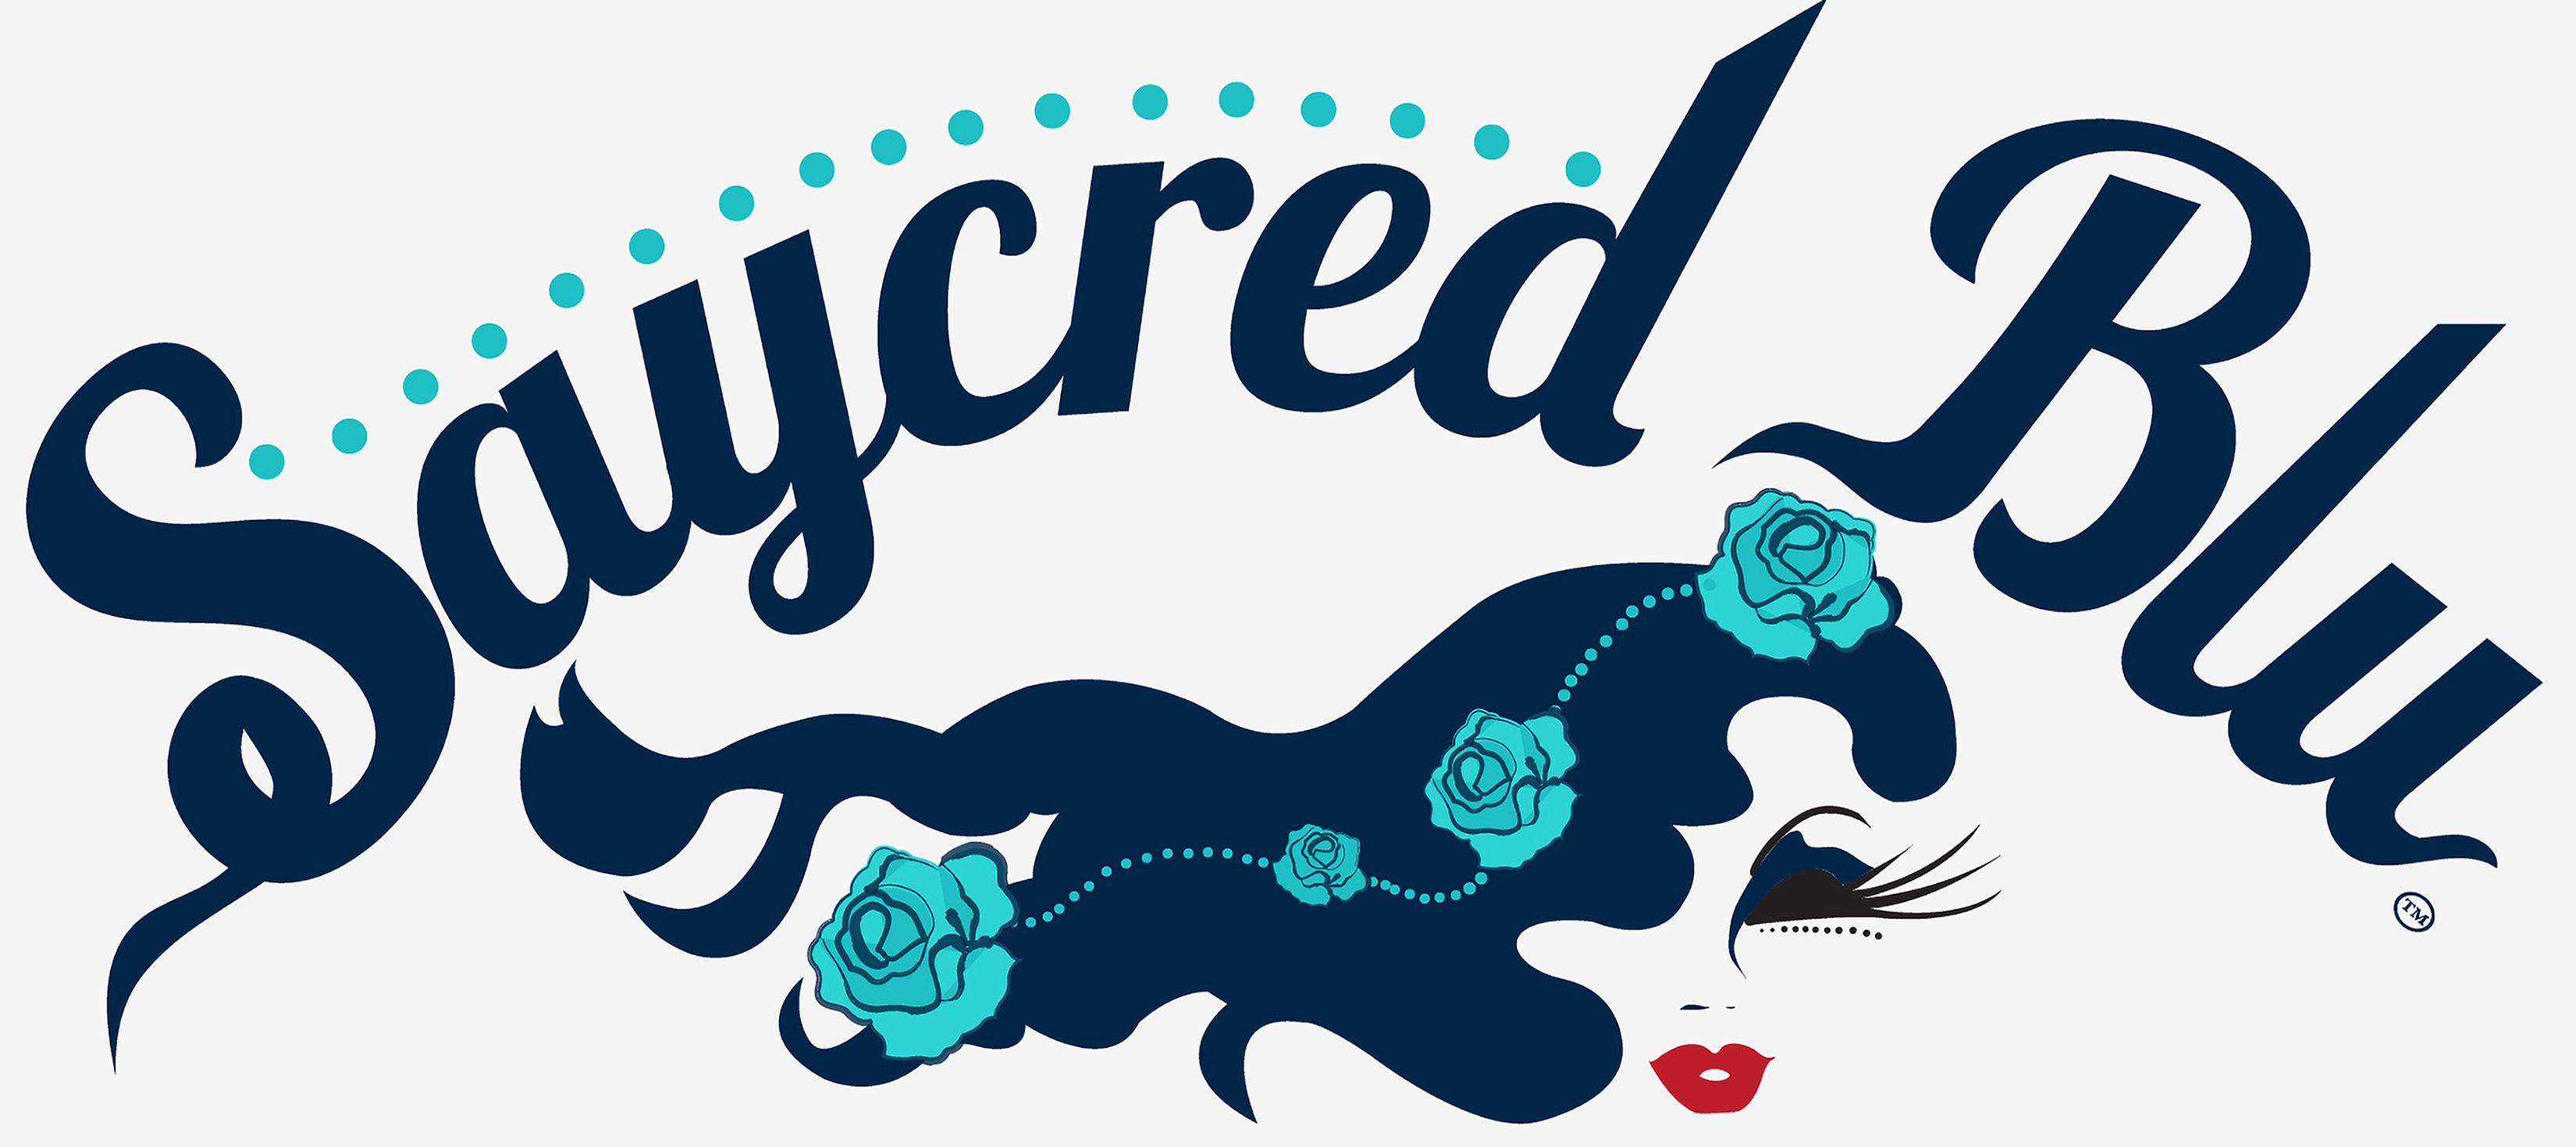 SAYCRED BLU - Artist Website